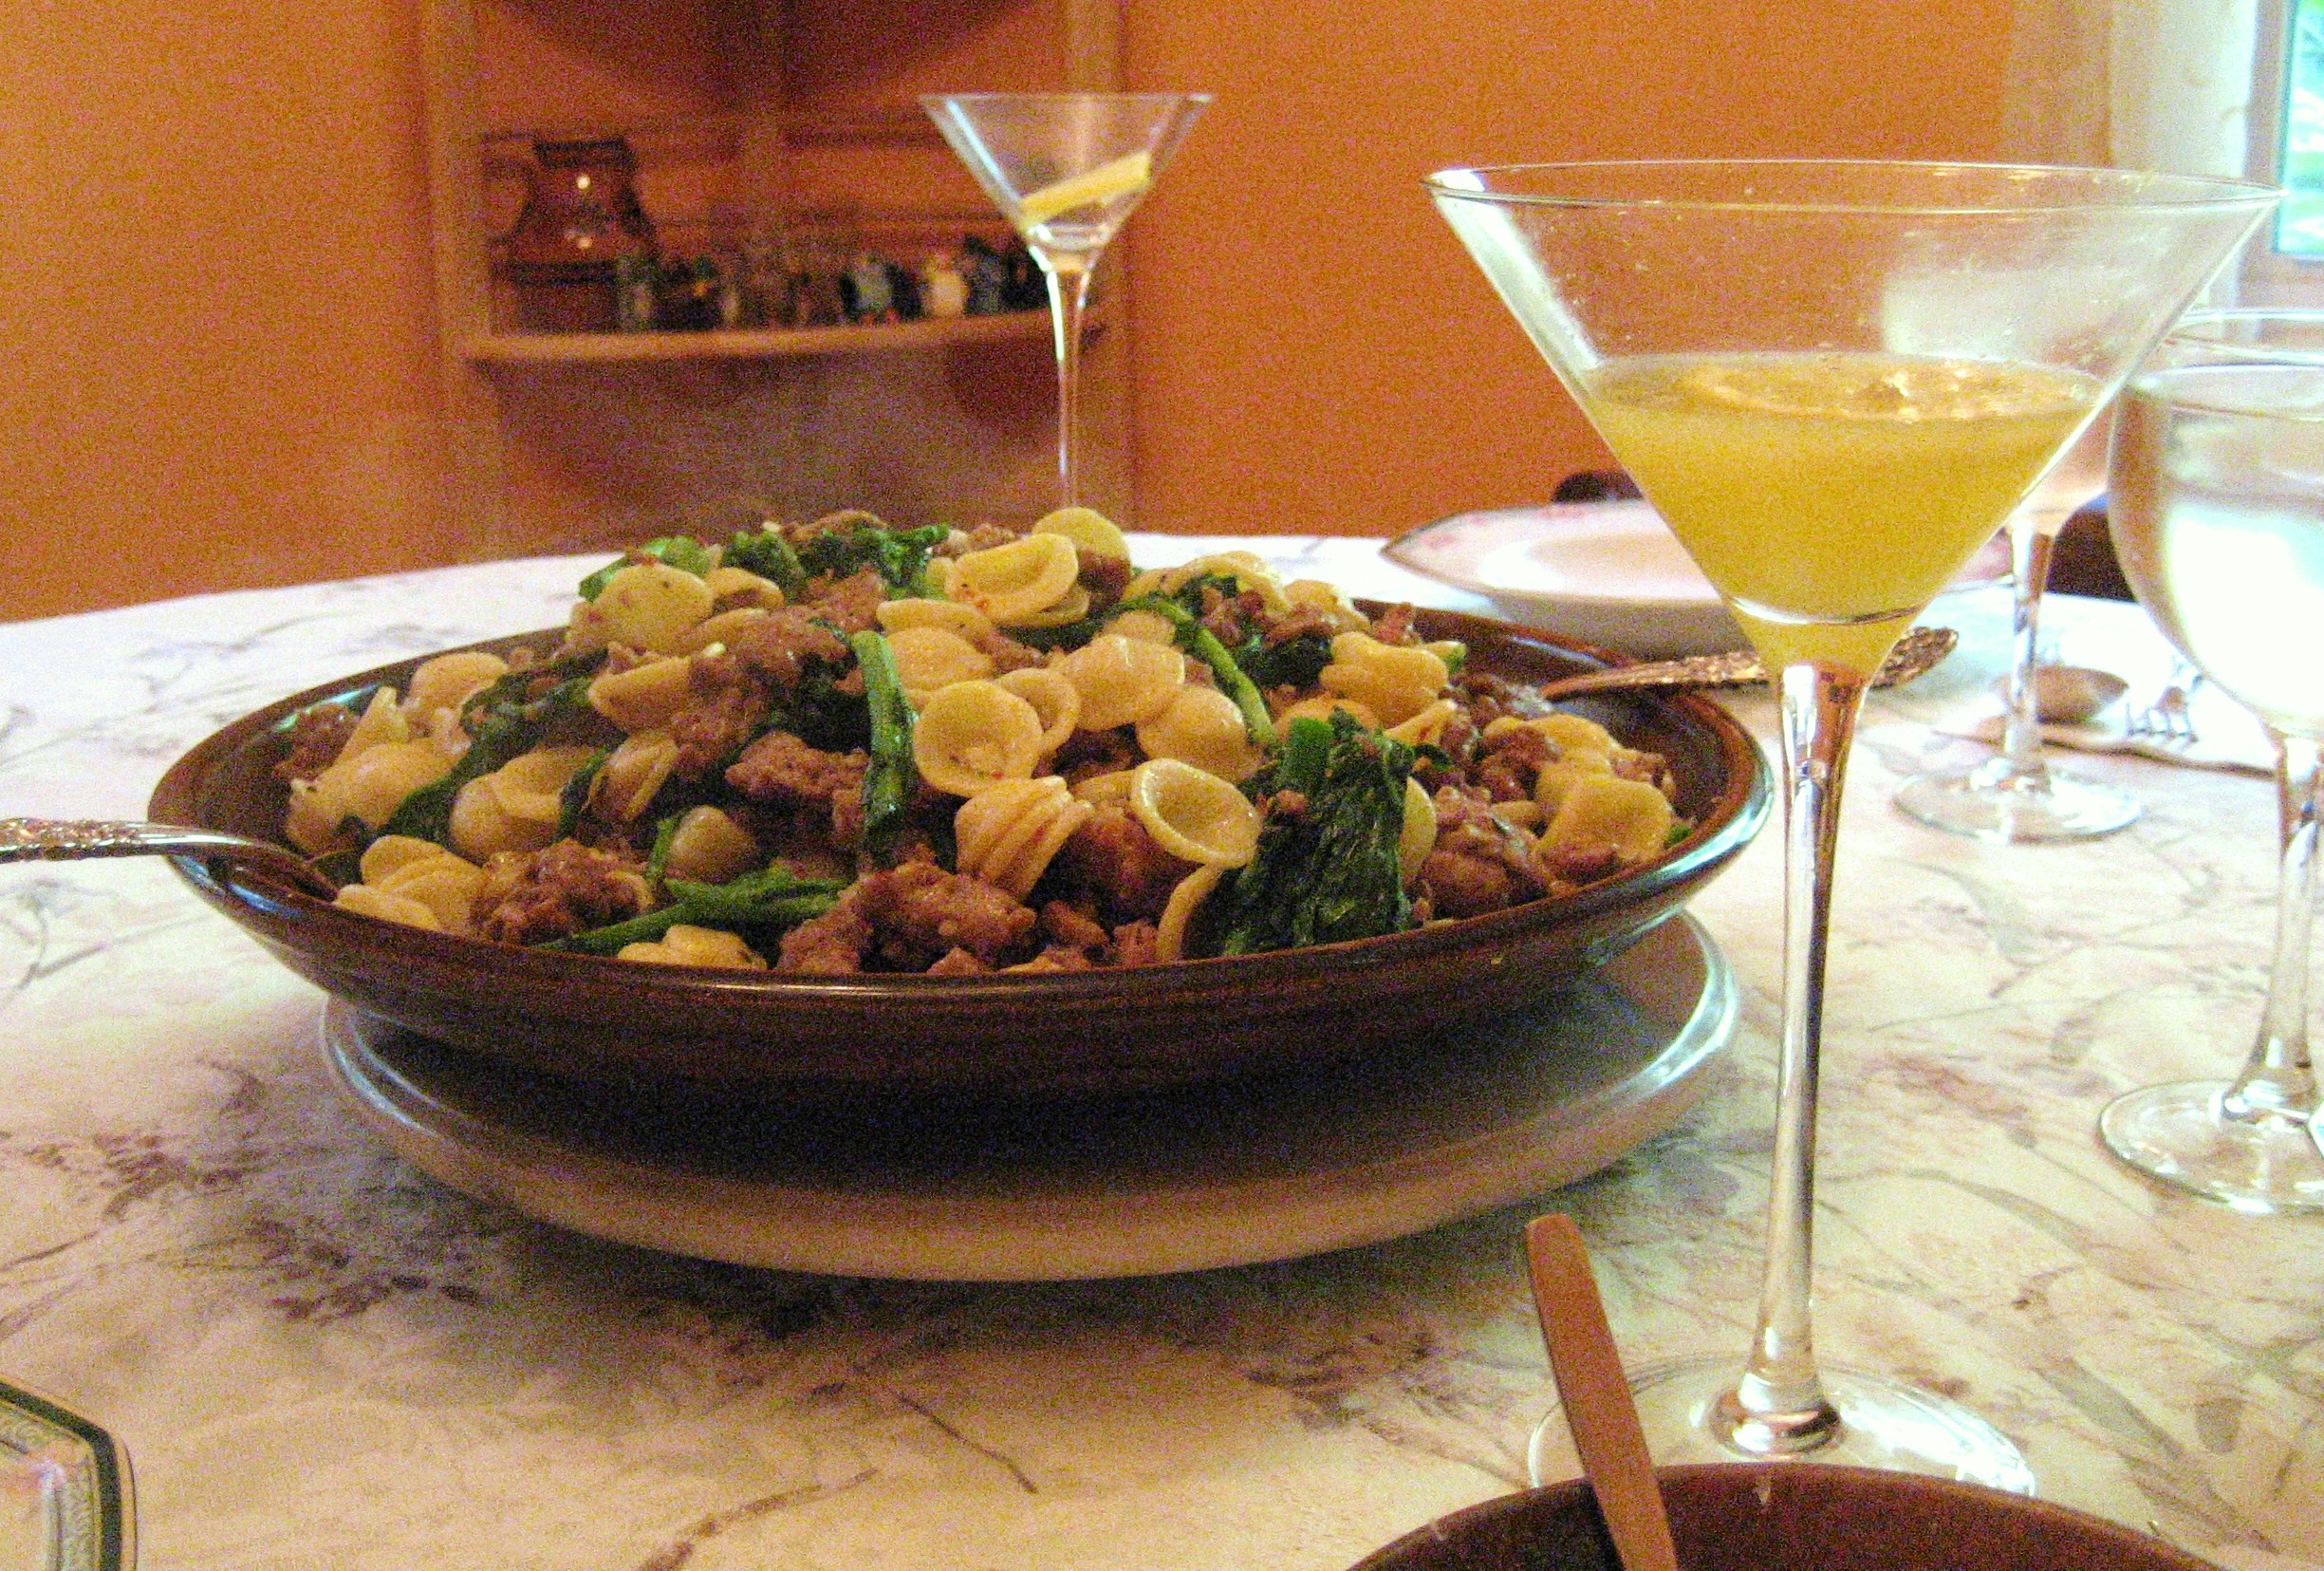 Orecchiette with Sausage and Broccoli Rabe | sweetpaprika